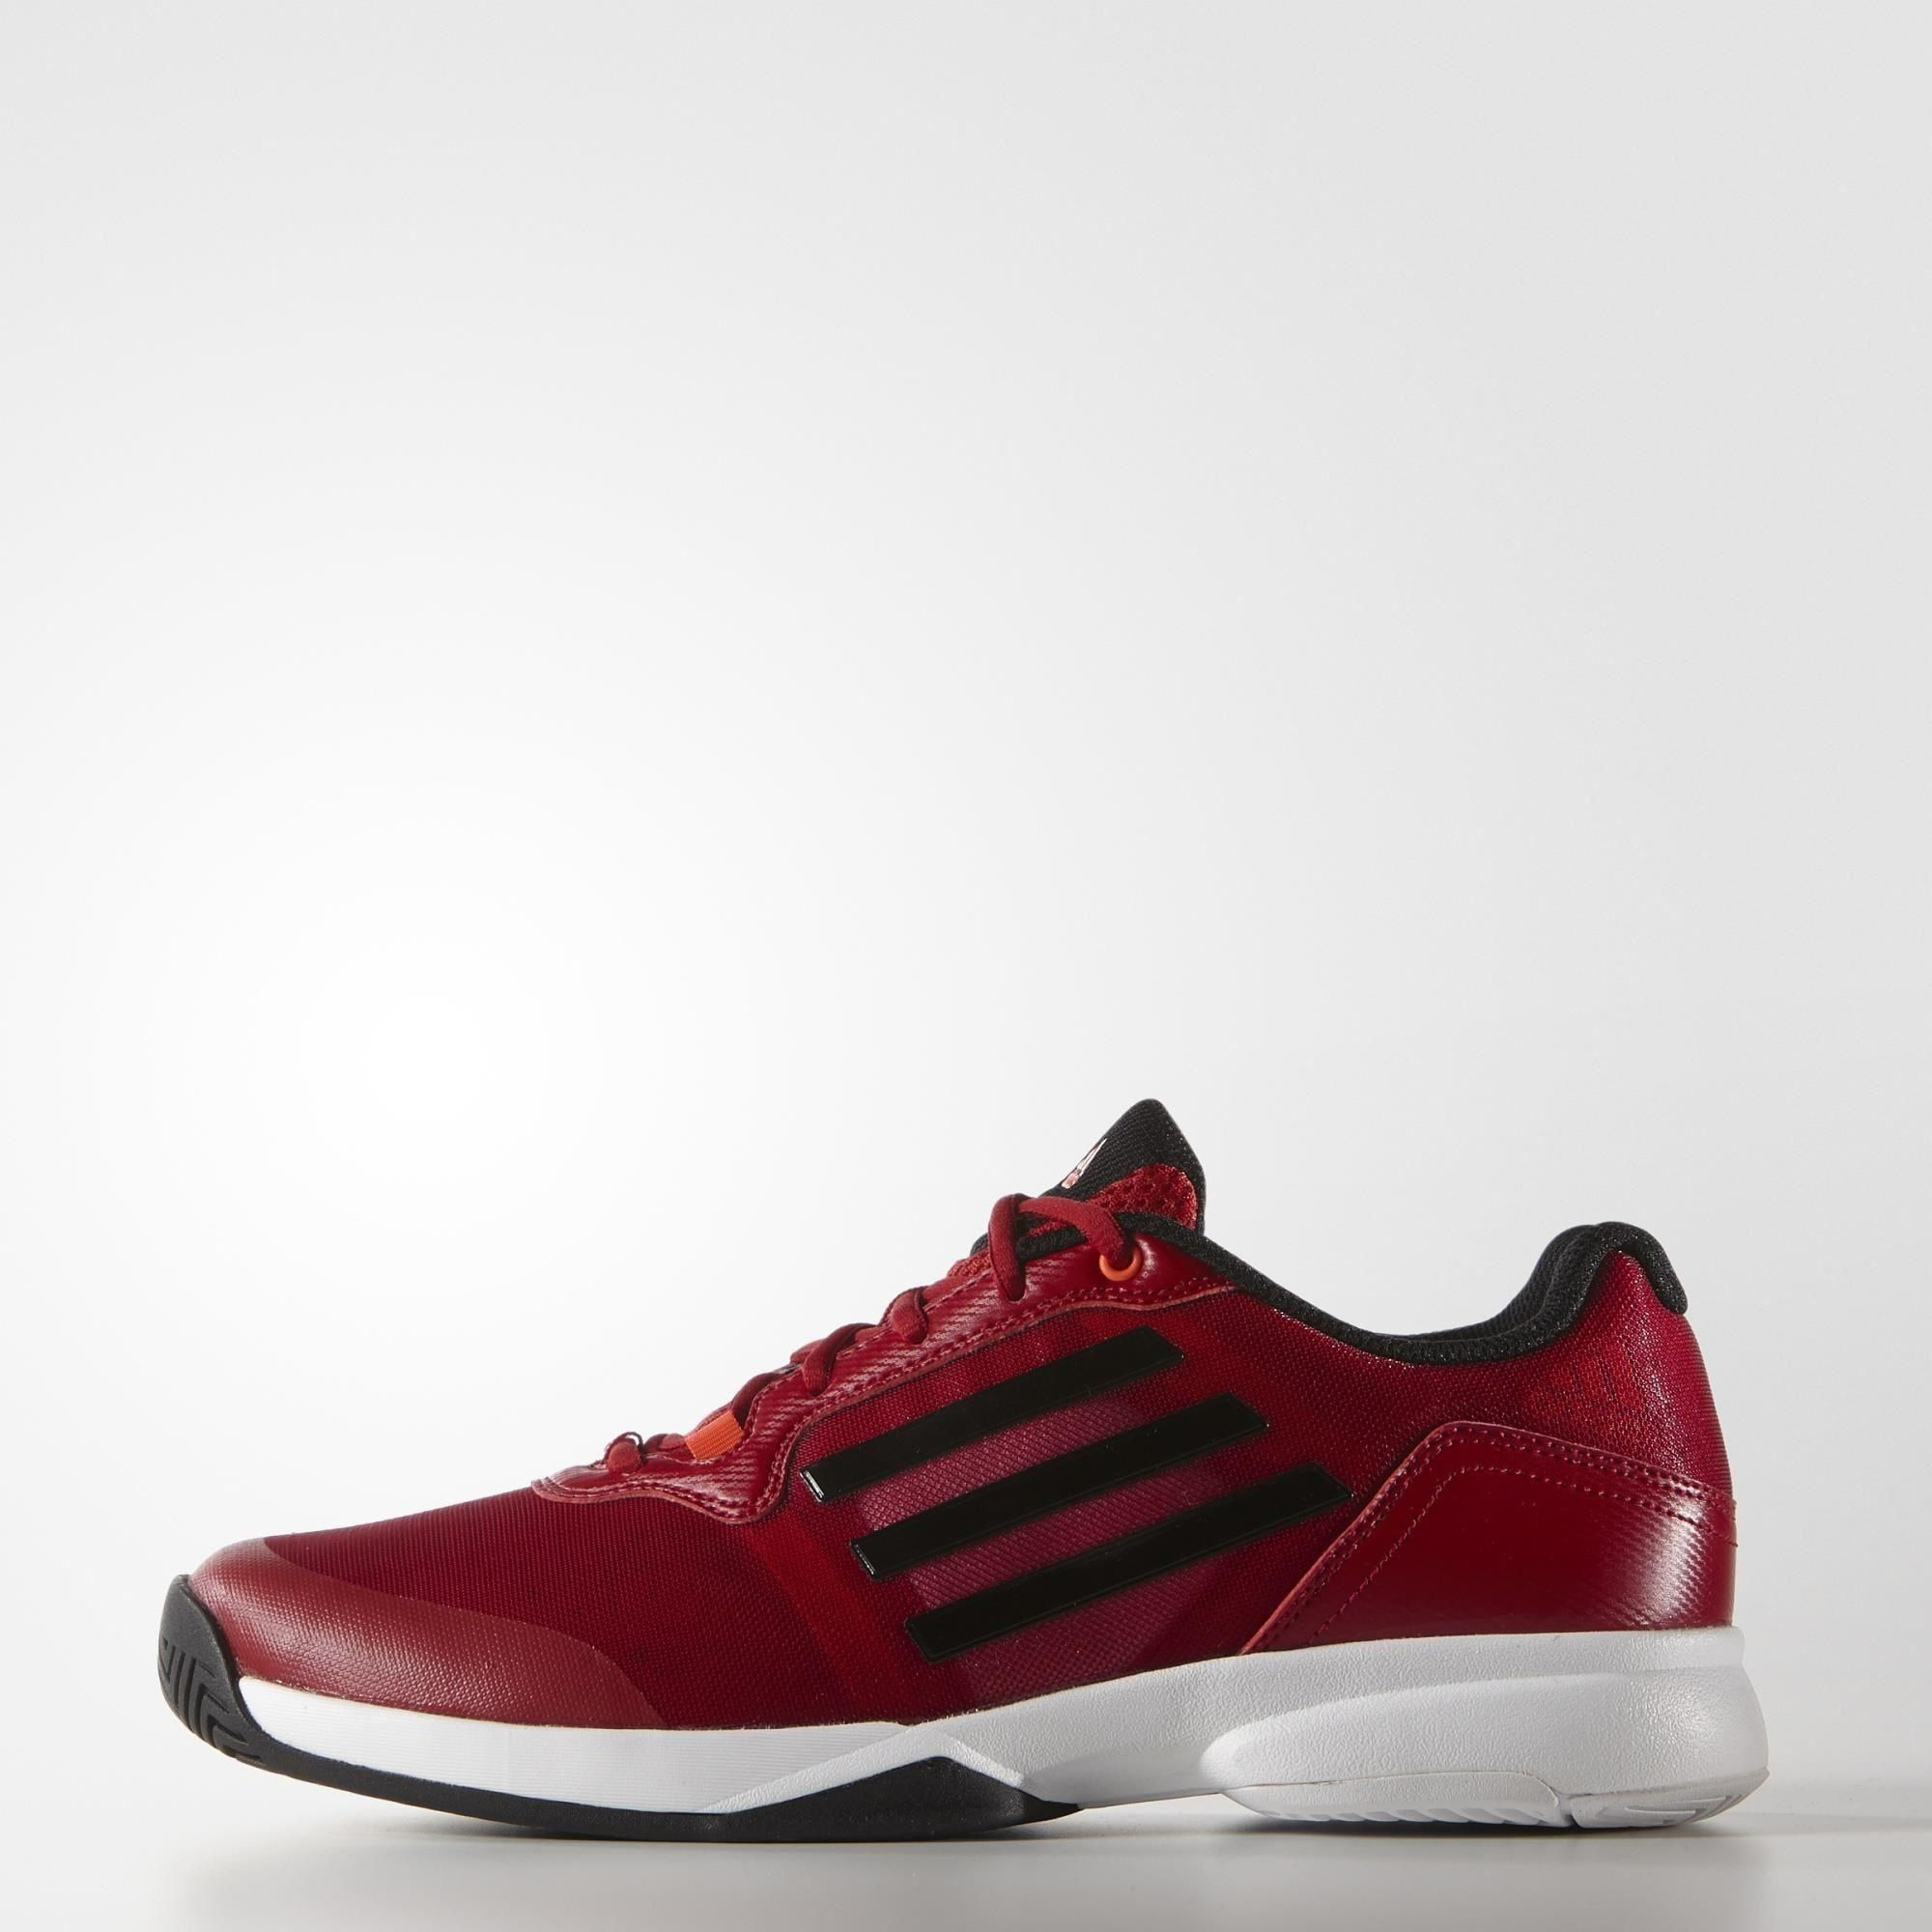 Adidas Mens Sonic Court Tennis Shoes Red Core Black With Images Adidas Men Adidas Tennis Shoes